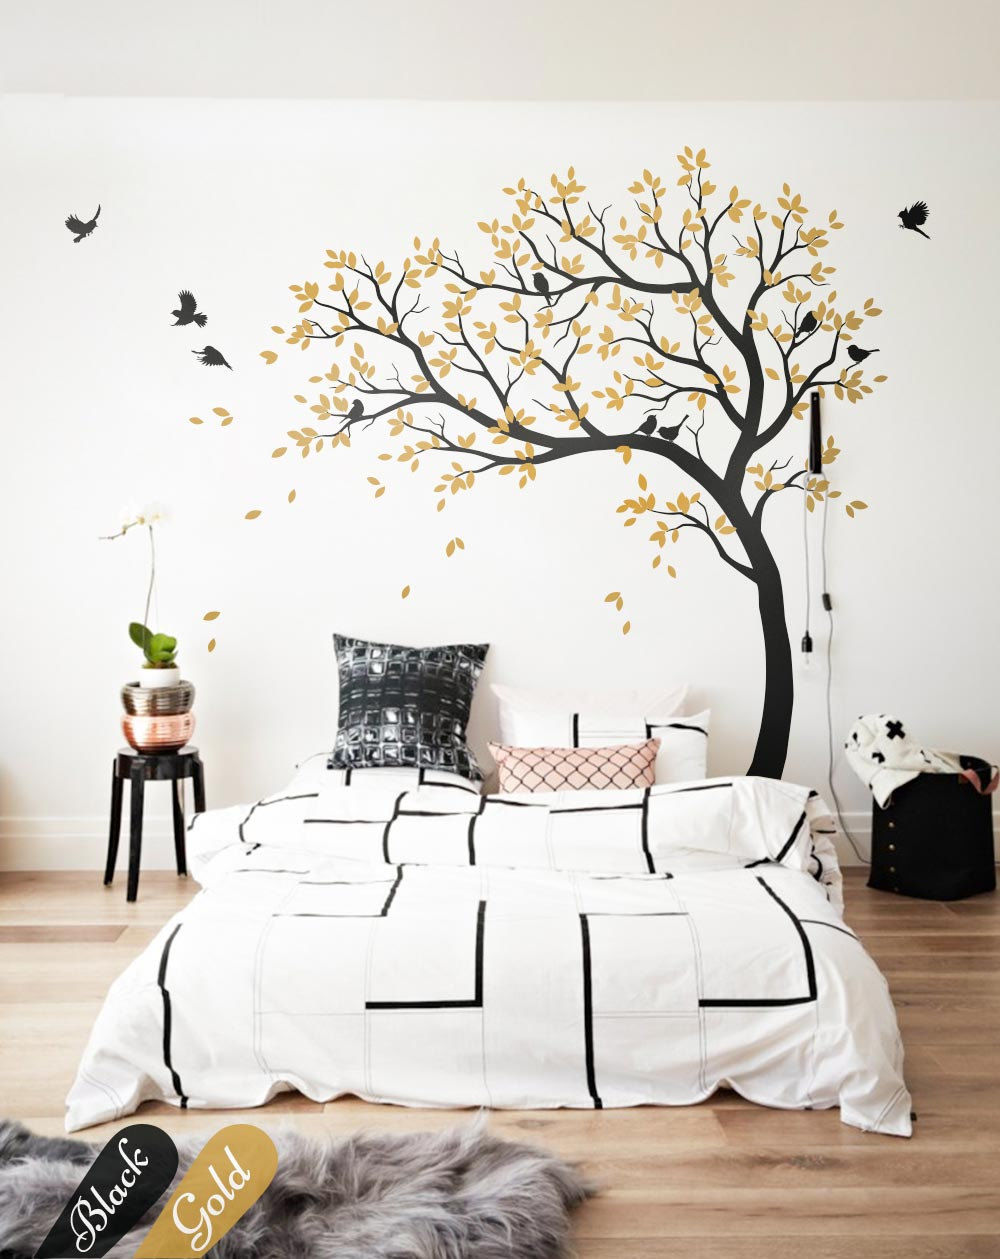 large black tree nursery wall design with cute birds and leaves baby room decor diy removable. Black Bedroom Furniture Sets. Home Design Ideas